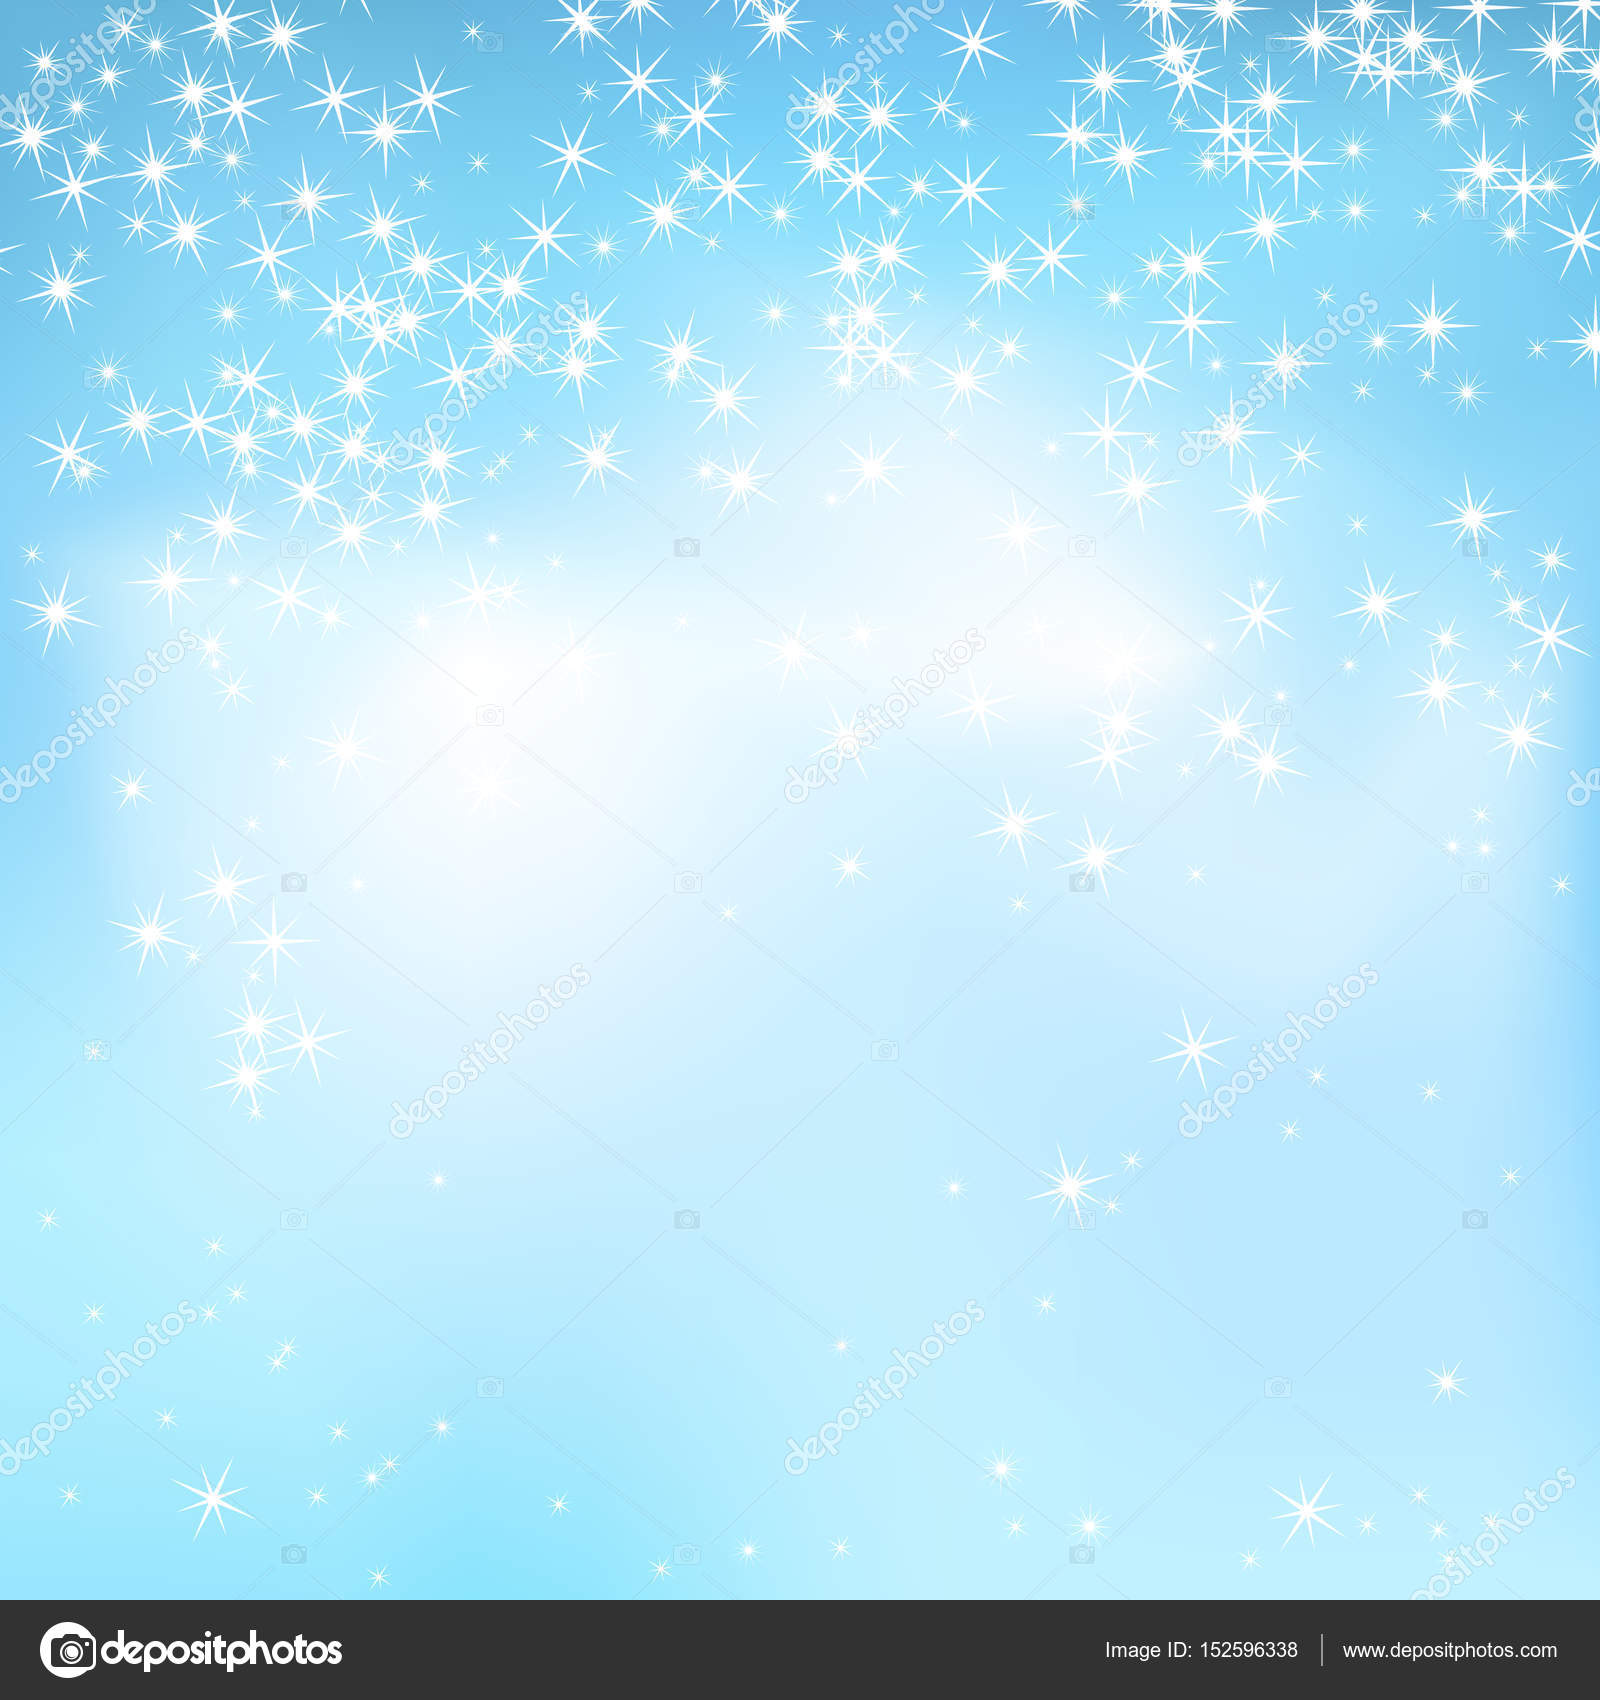 blue sky abstract background with soft clouds and stars magical new year christmas event